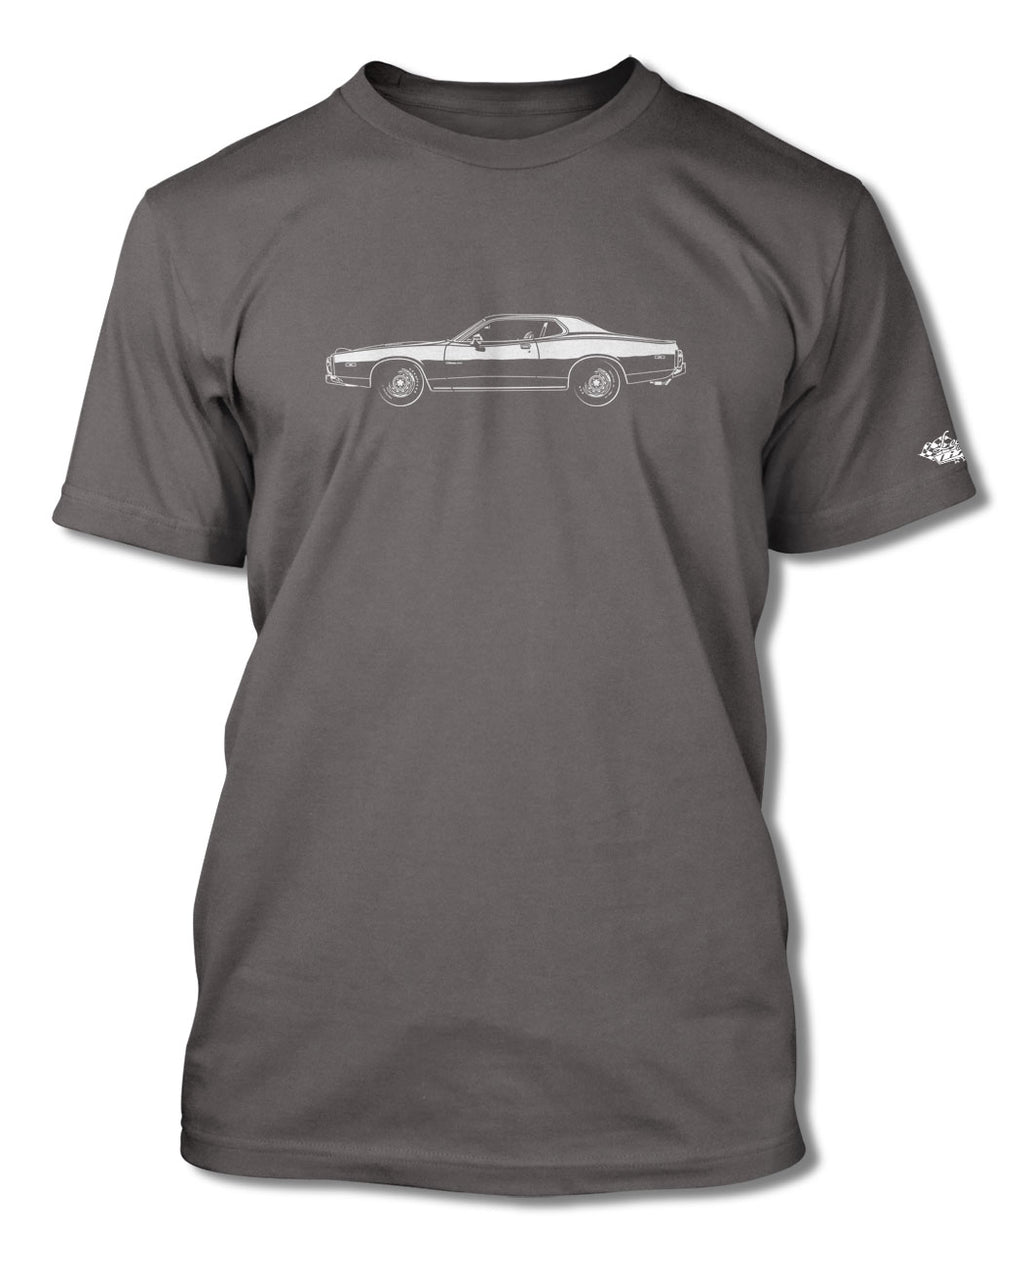 1973 Dodge Charger Rallye 440 Magnum Coupe T-Shirt - Men - Side View